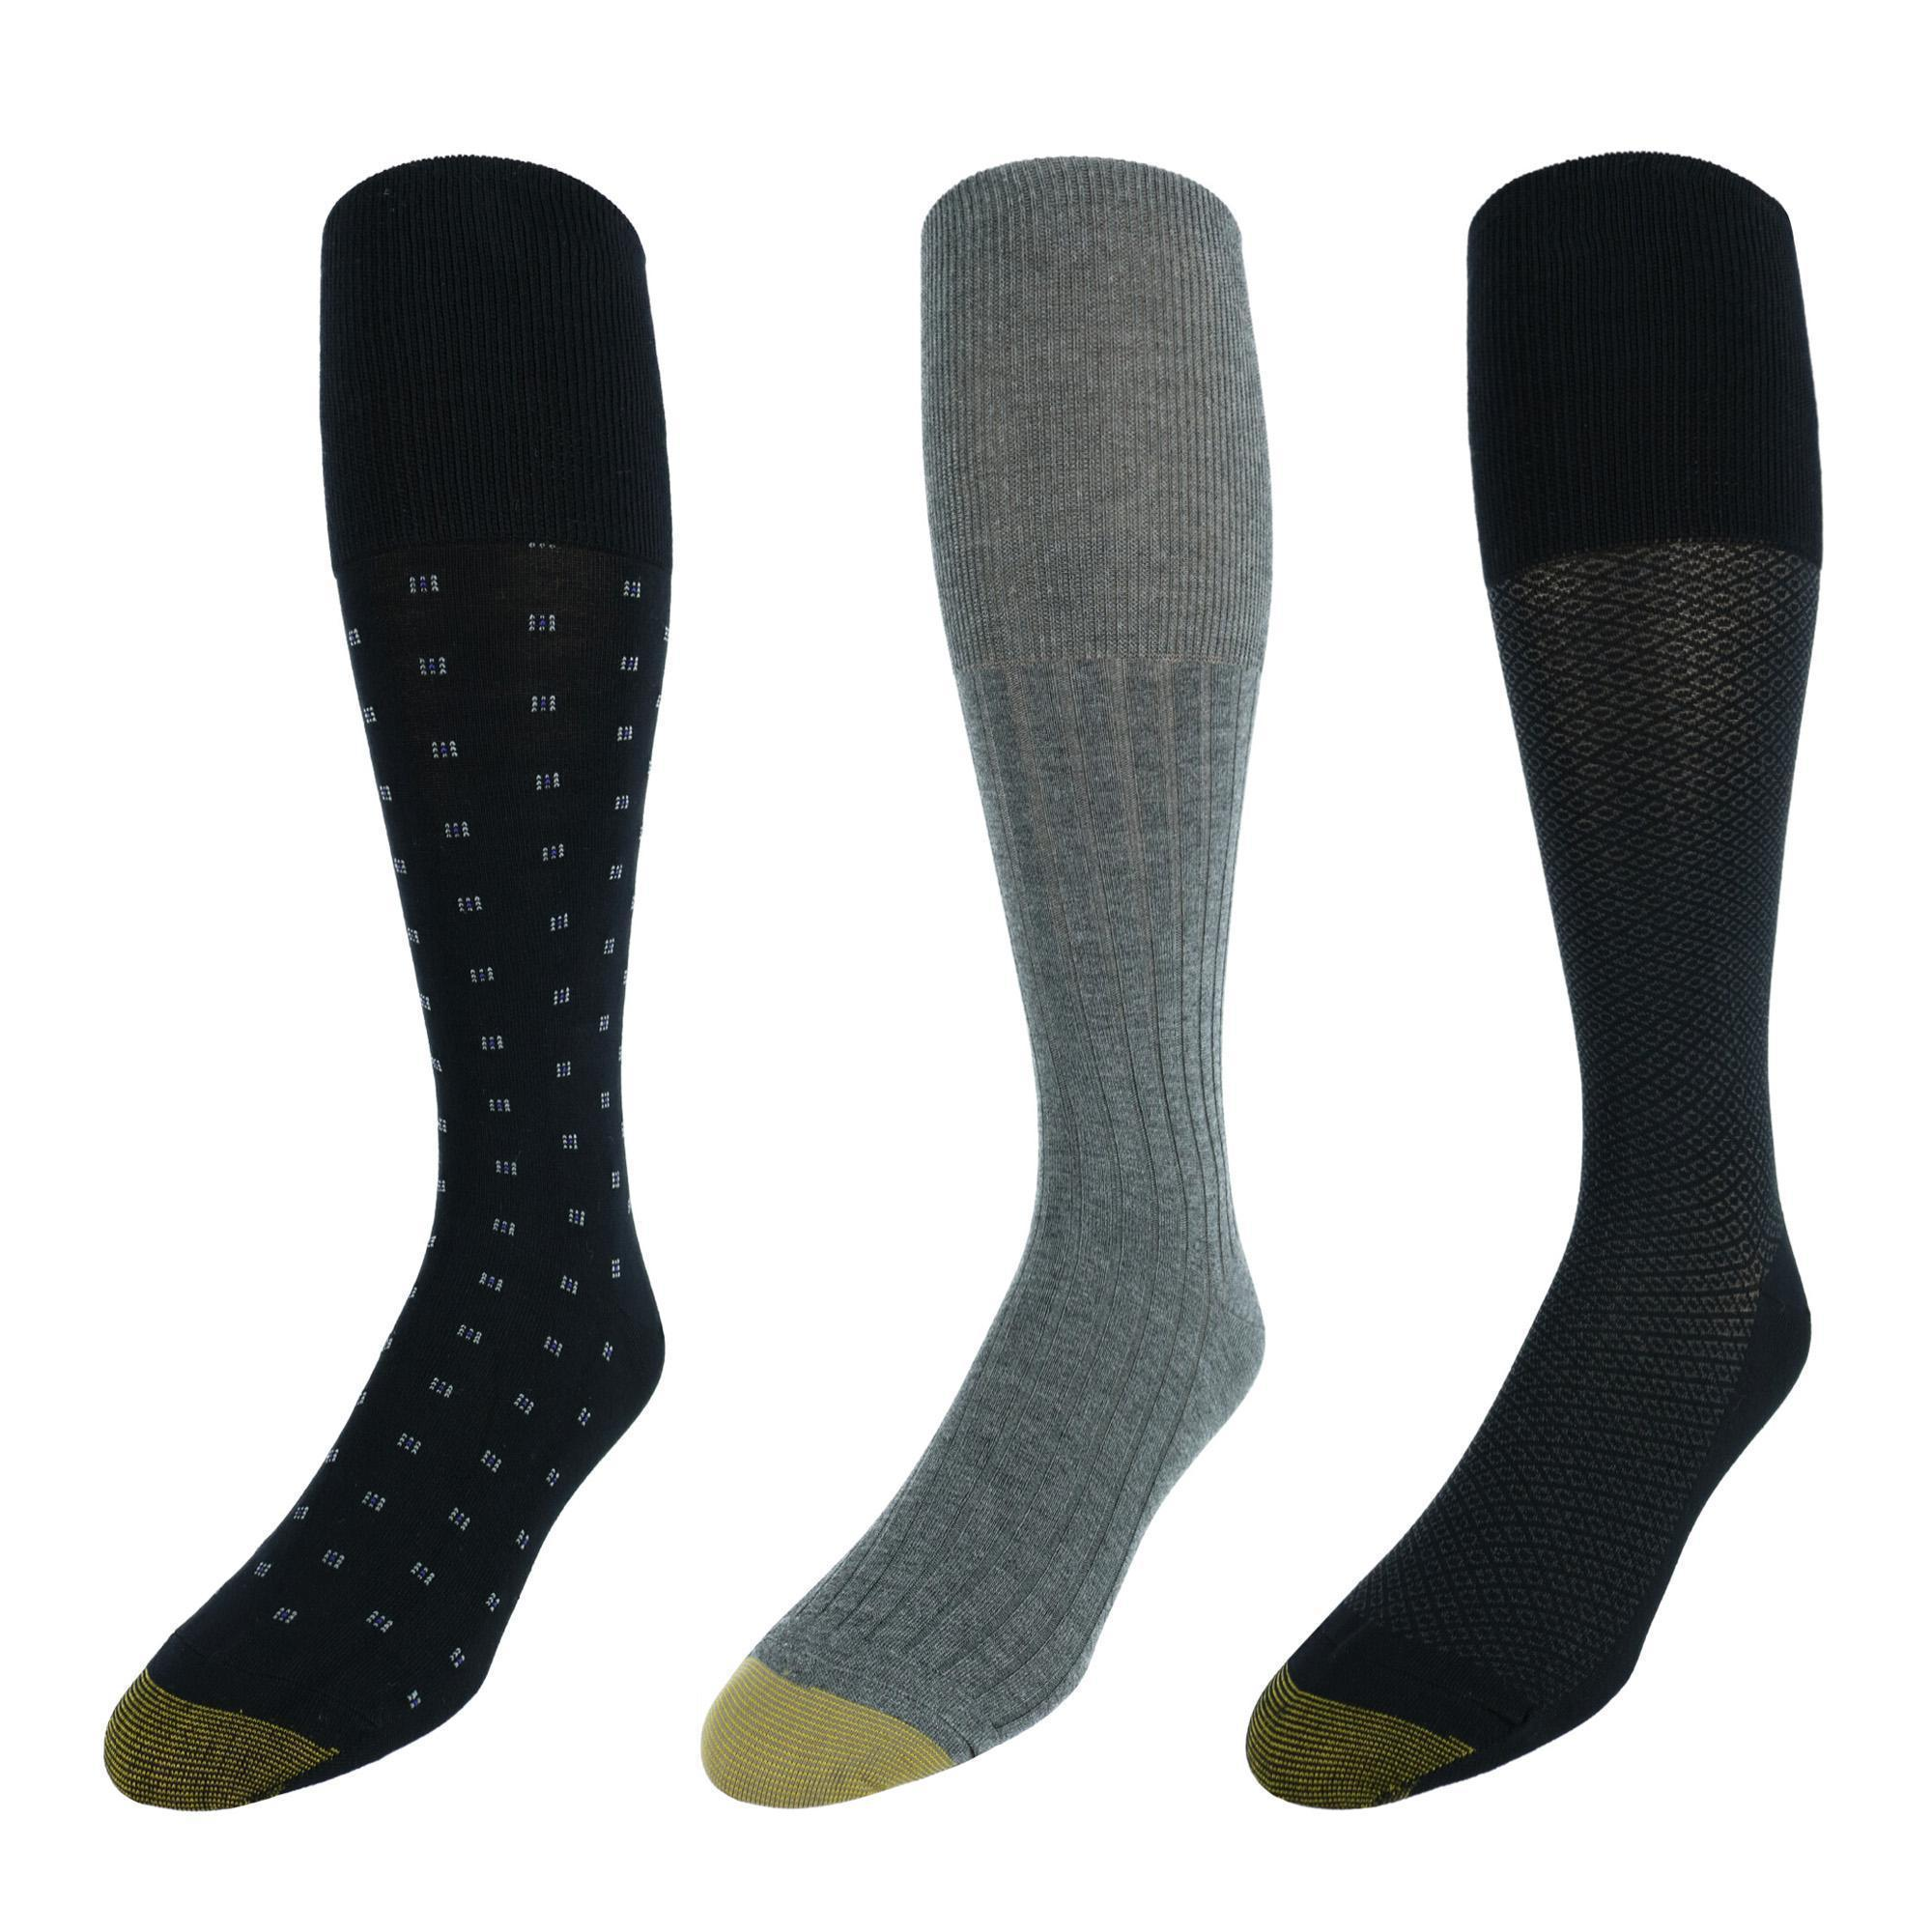 Gold_Toe_Mens_Over_the_Calf_Moisture_Control_Fashion_Socks_Pack_of